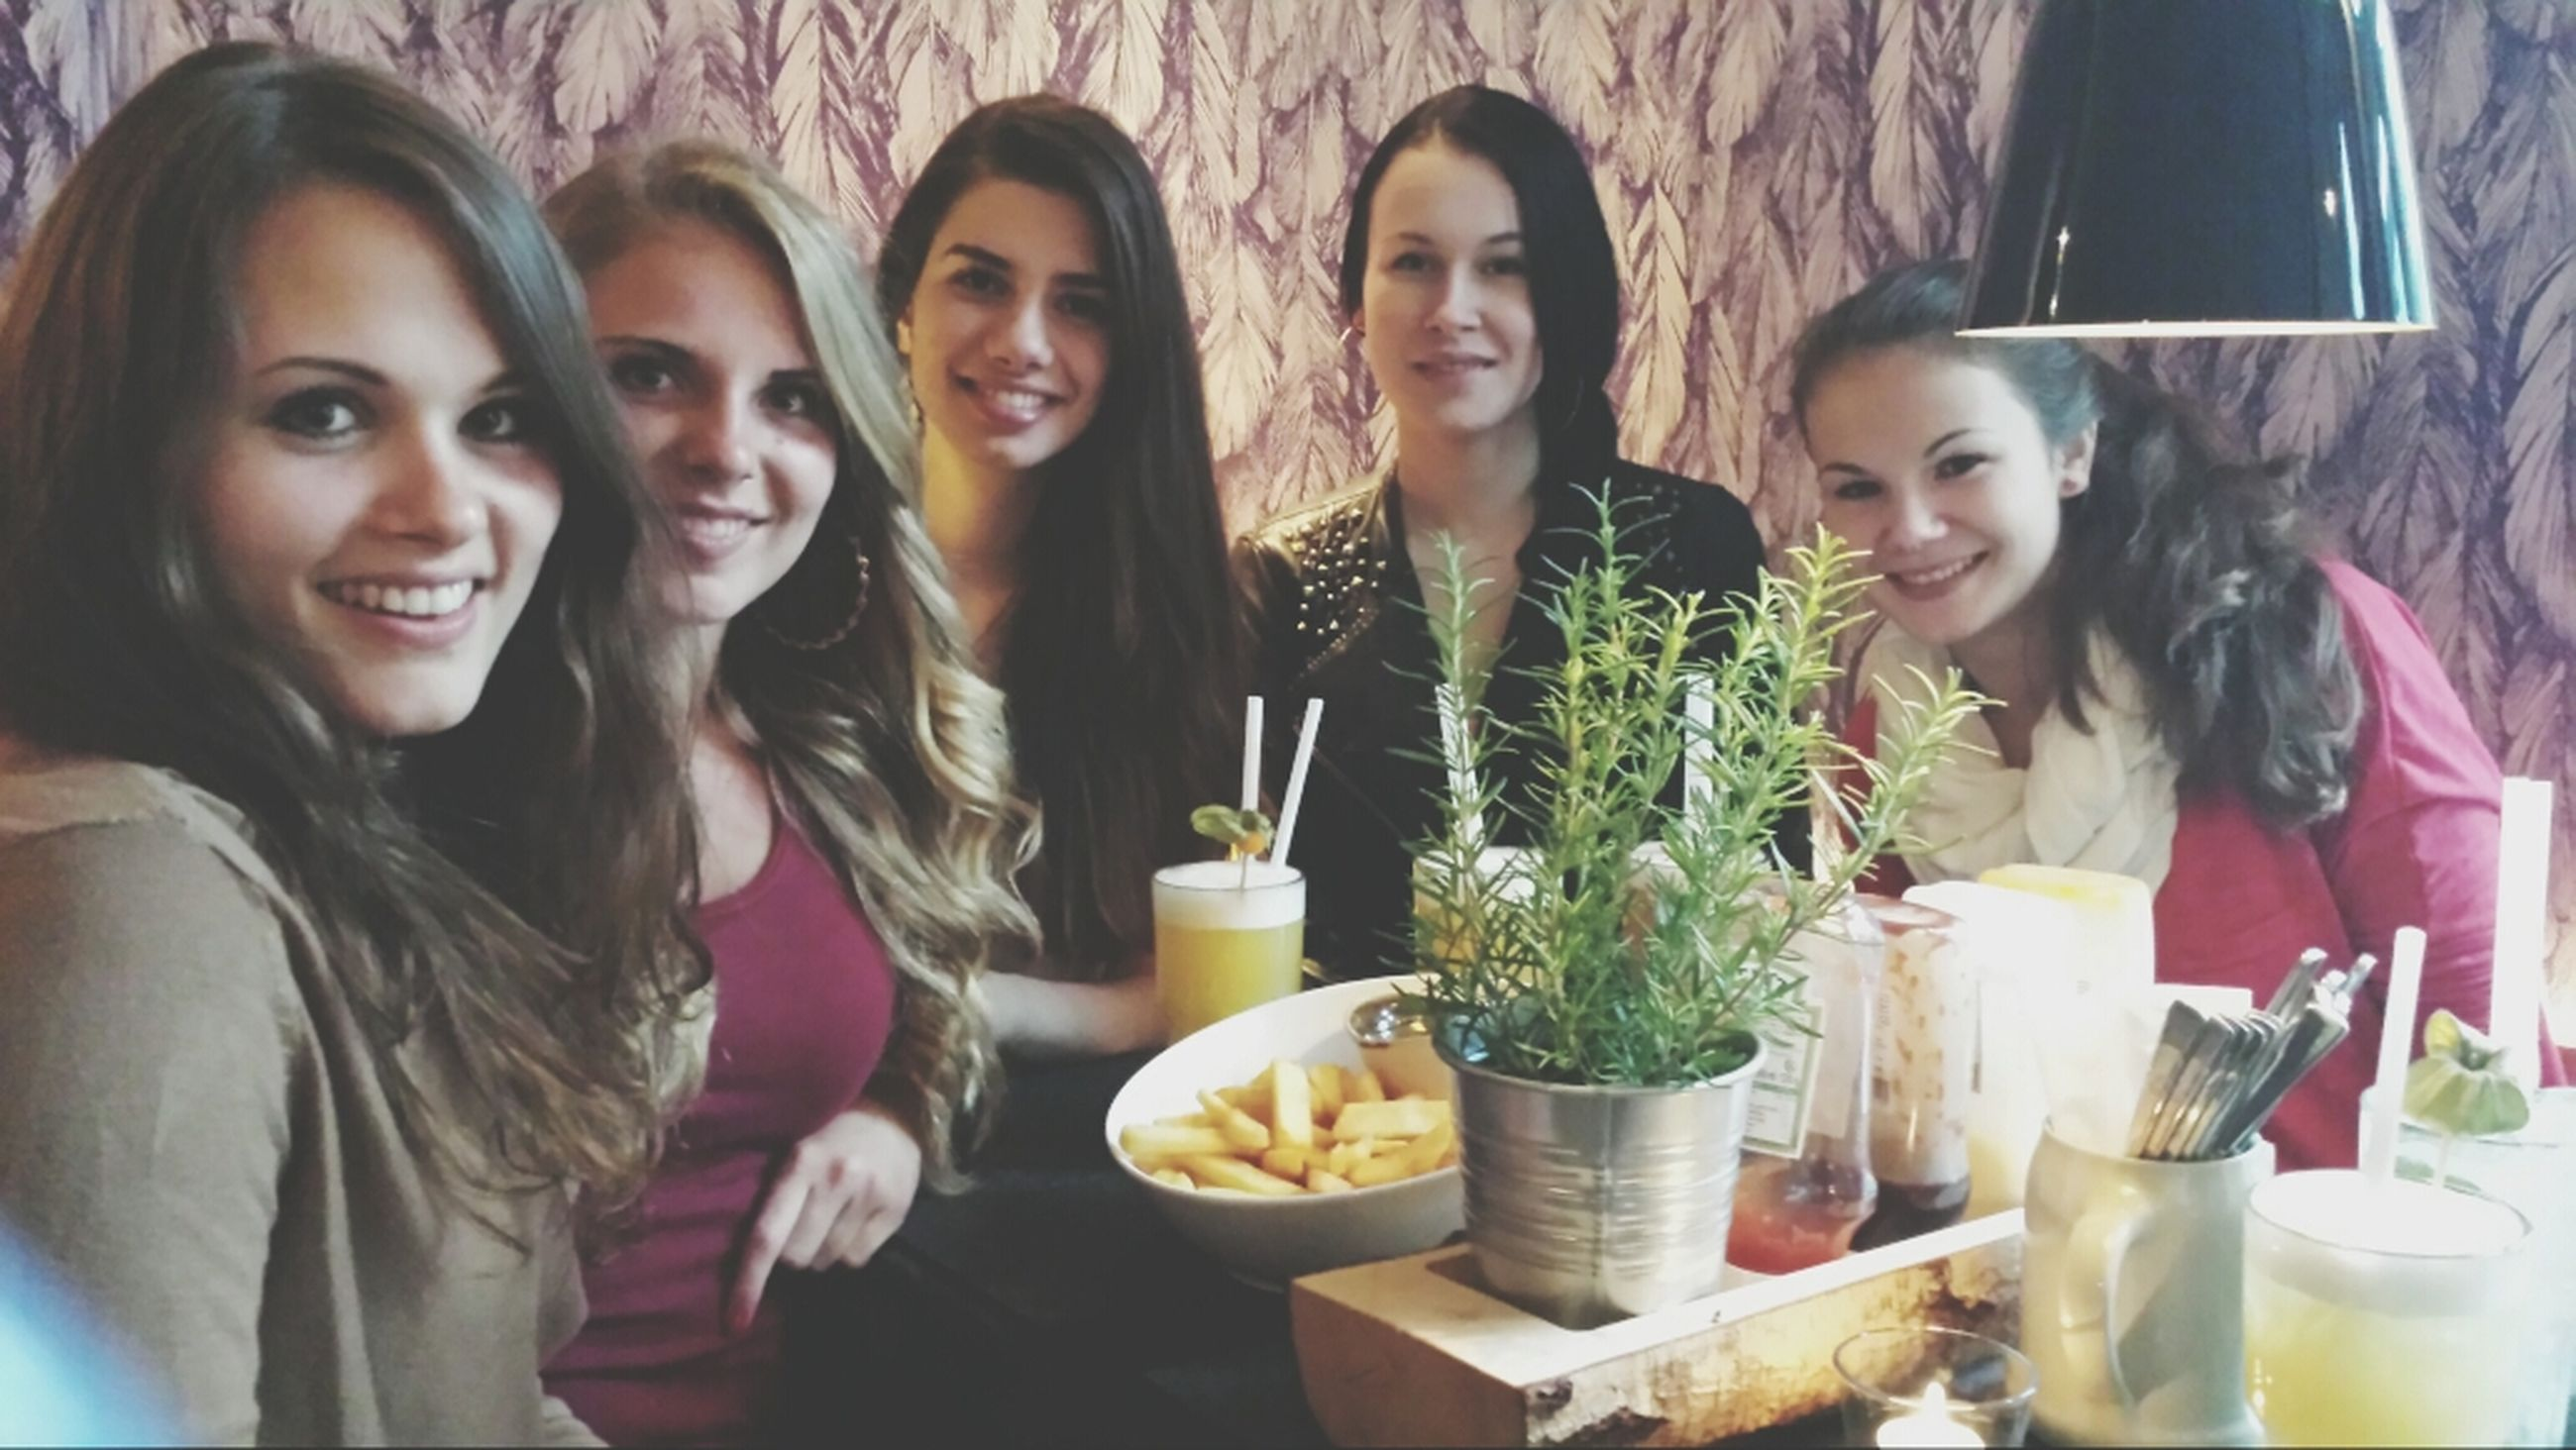 indoors, lifestyles, leisure activity, food and drink, togetherness, table, young adult, person, restaurant, young women, drink, friendship, casual clothing, bonding, sitting, portrait, smiling, front view